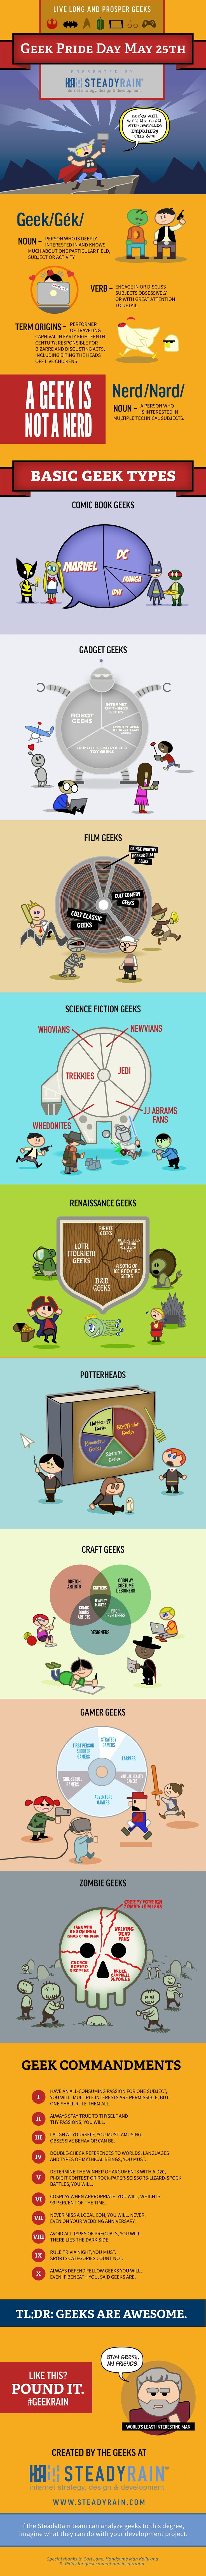 Happy Geek Pride Day! Our team of 20 does not take geek holidays lightly. With May the fourth behind us, we're taking full advantage of Geek Pride Day on Sunday, May 25, to let our geek flags fly. We designed the infographic below in celebration. Feel free to share it with friends and let us know what you think on Twitter with the hashtag #GeekRain.